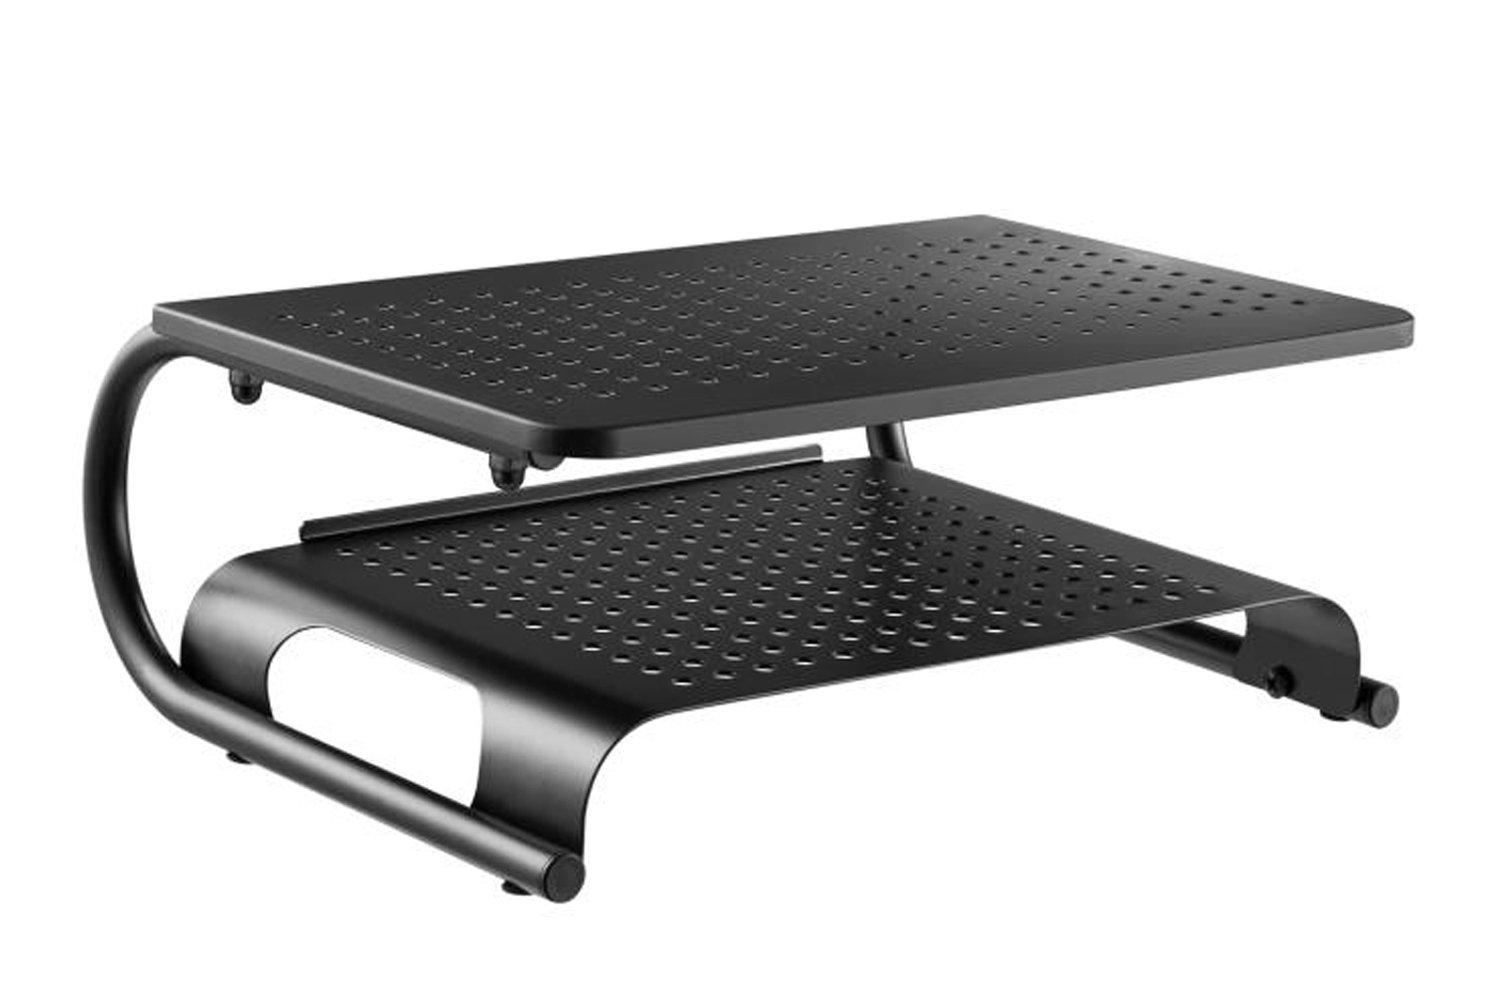 Halter LZ-500 Premium Vented Two Tier Metal Monitor Stand - 2 Tier Monitor Riser Laptop Stand w/Keyboard & Mouse Storage - Supports Up To 50 lbs (Black)